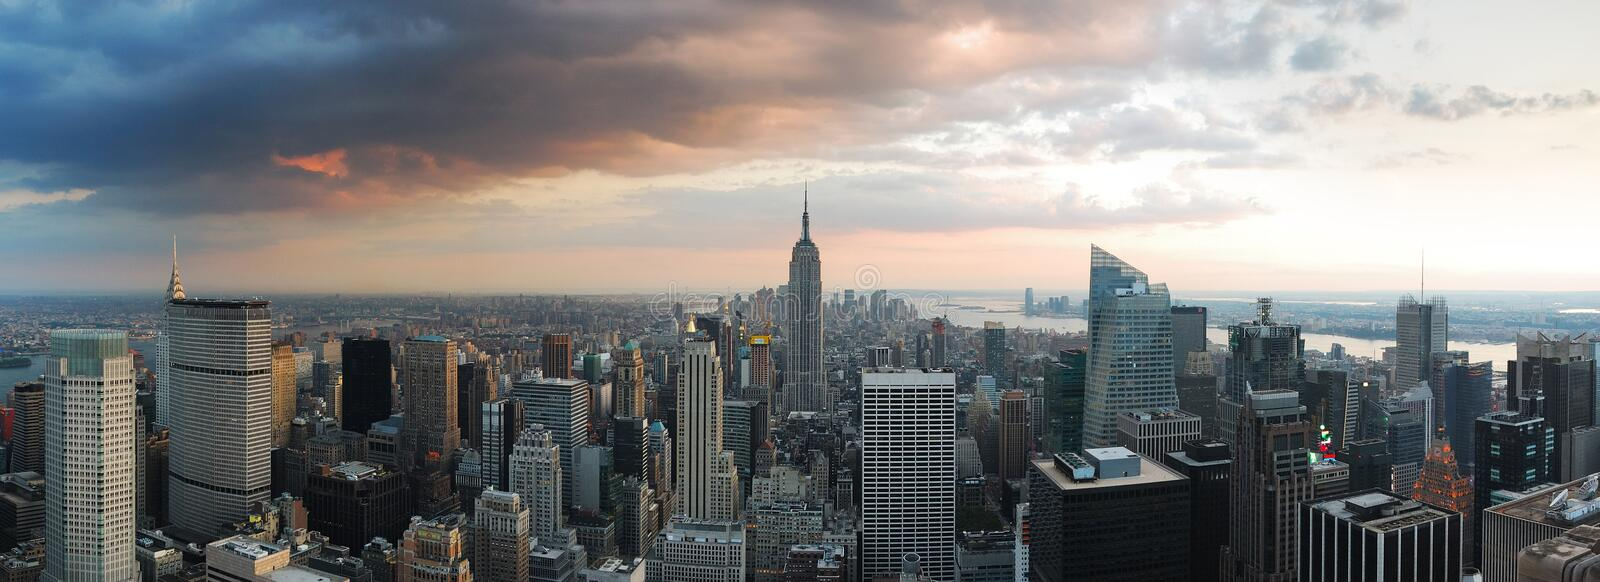 New- York CitySkyline-Panorama lizenzfreies stockbild